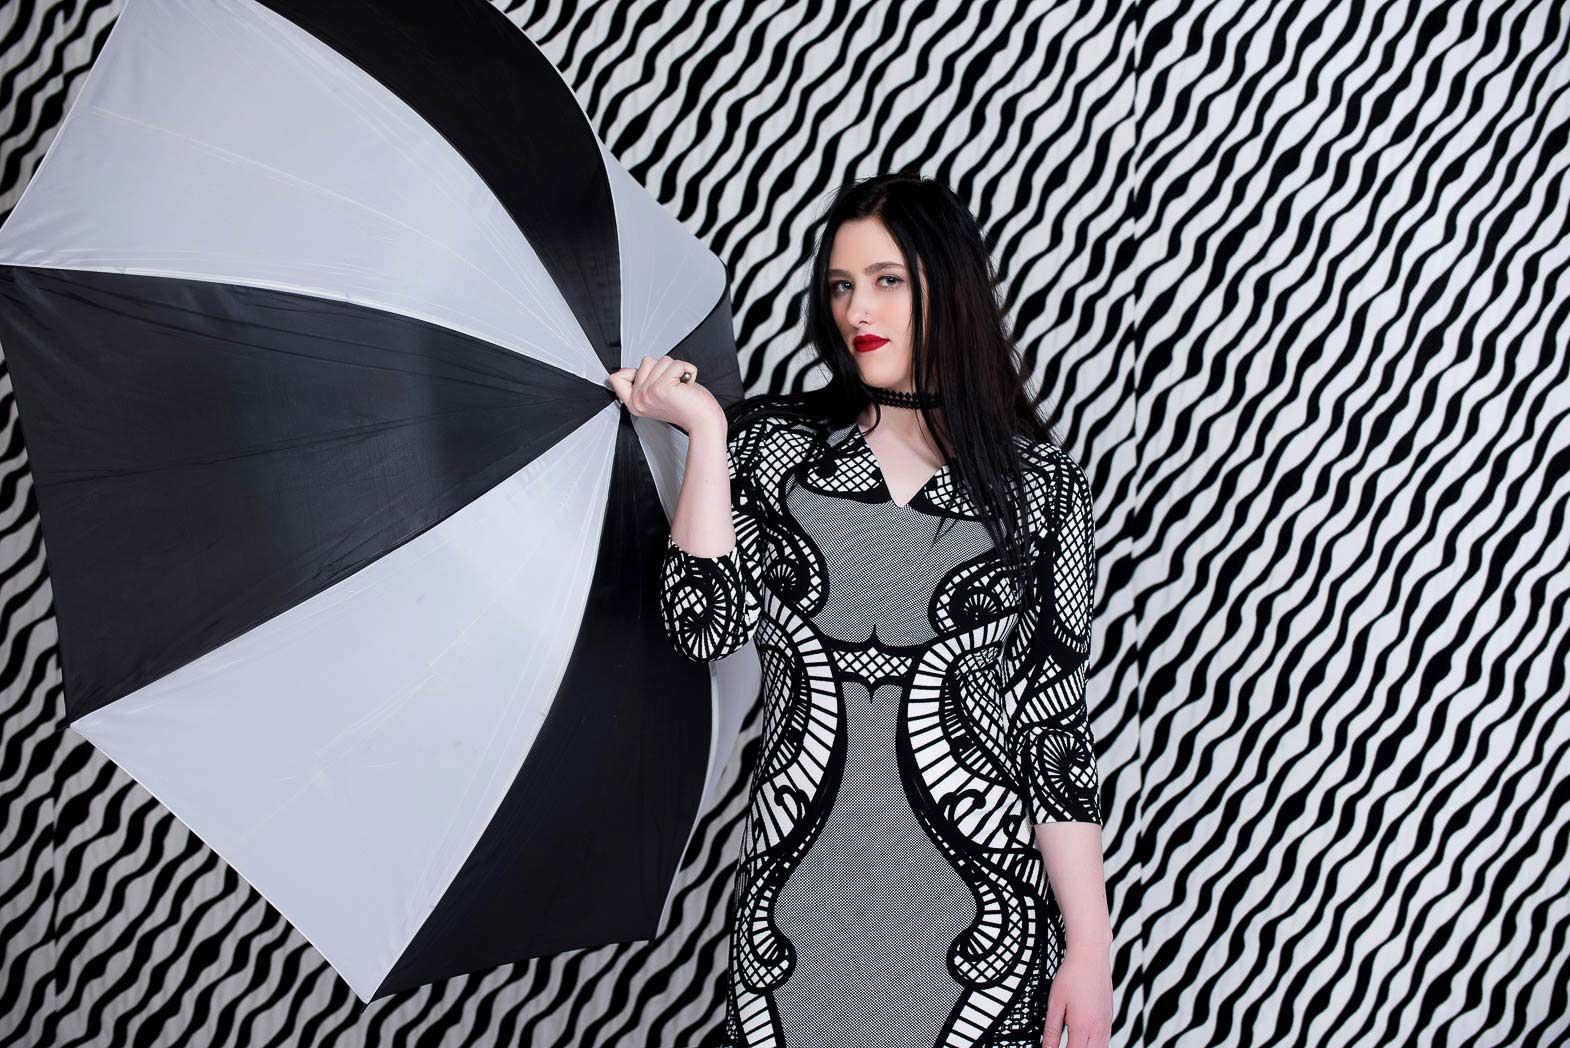 senior girl dressed in black and white holding umbrella during studio model shoot